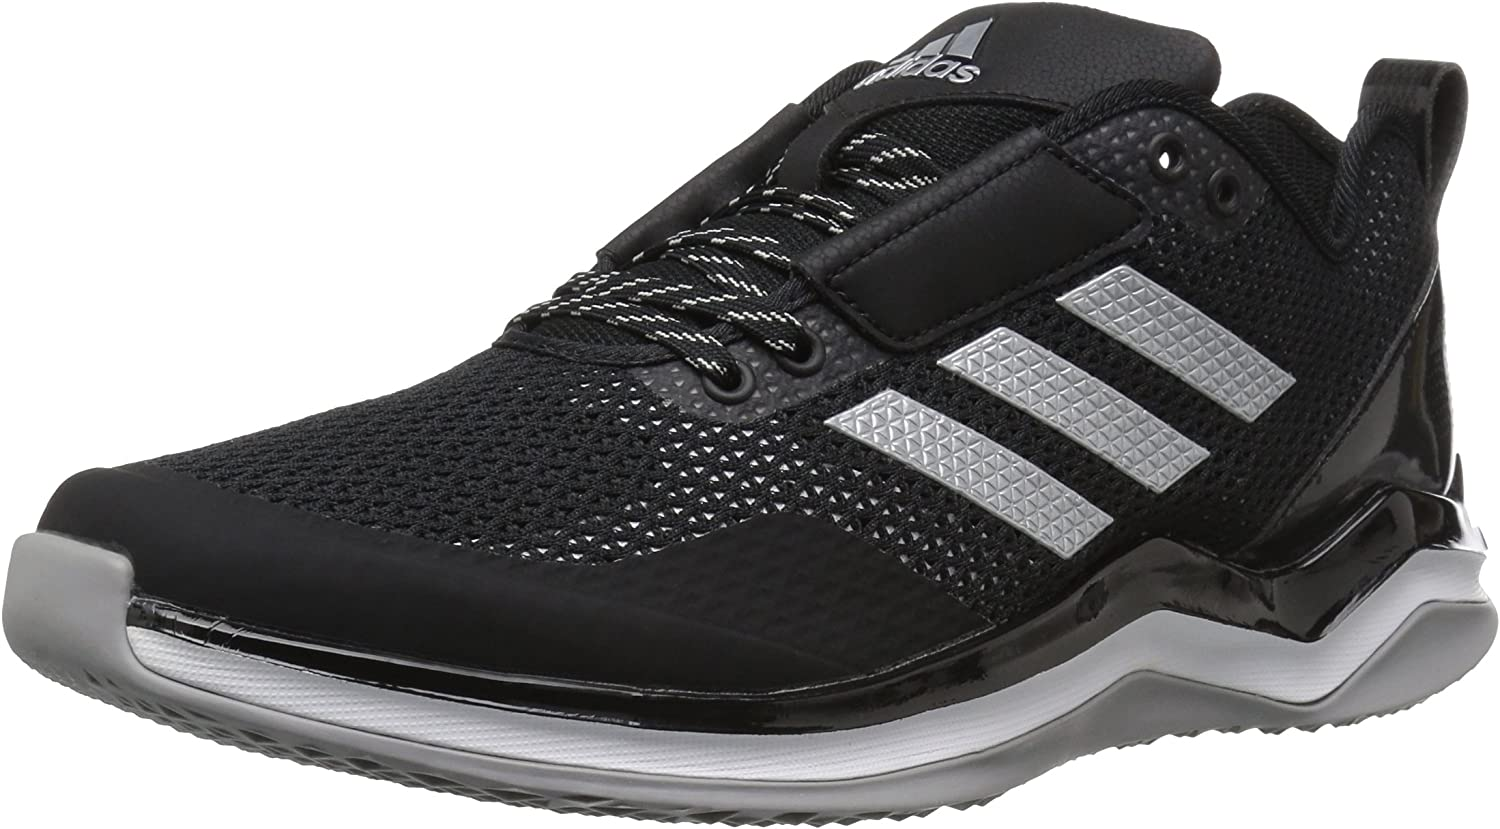 adidas Performance Men's Response Runner Tr Trail Super sale period limited Ranking TOP8